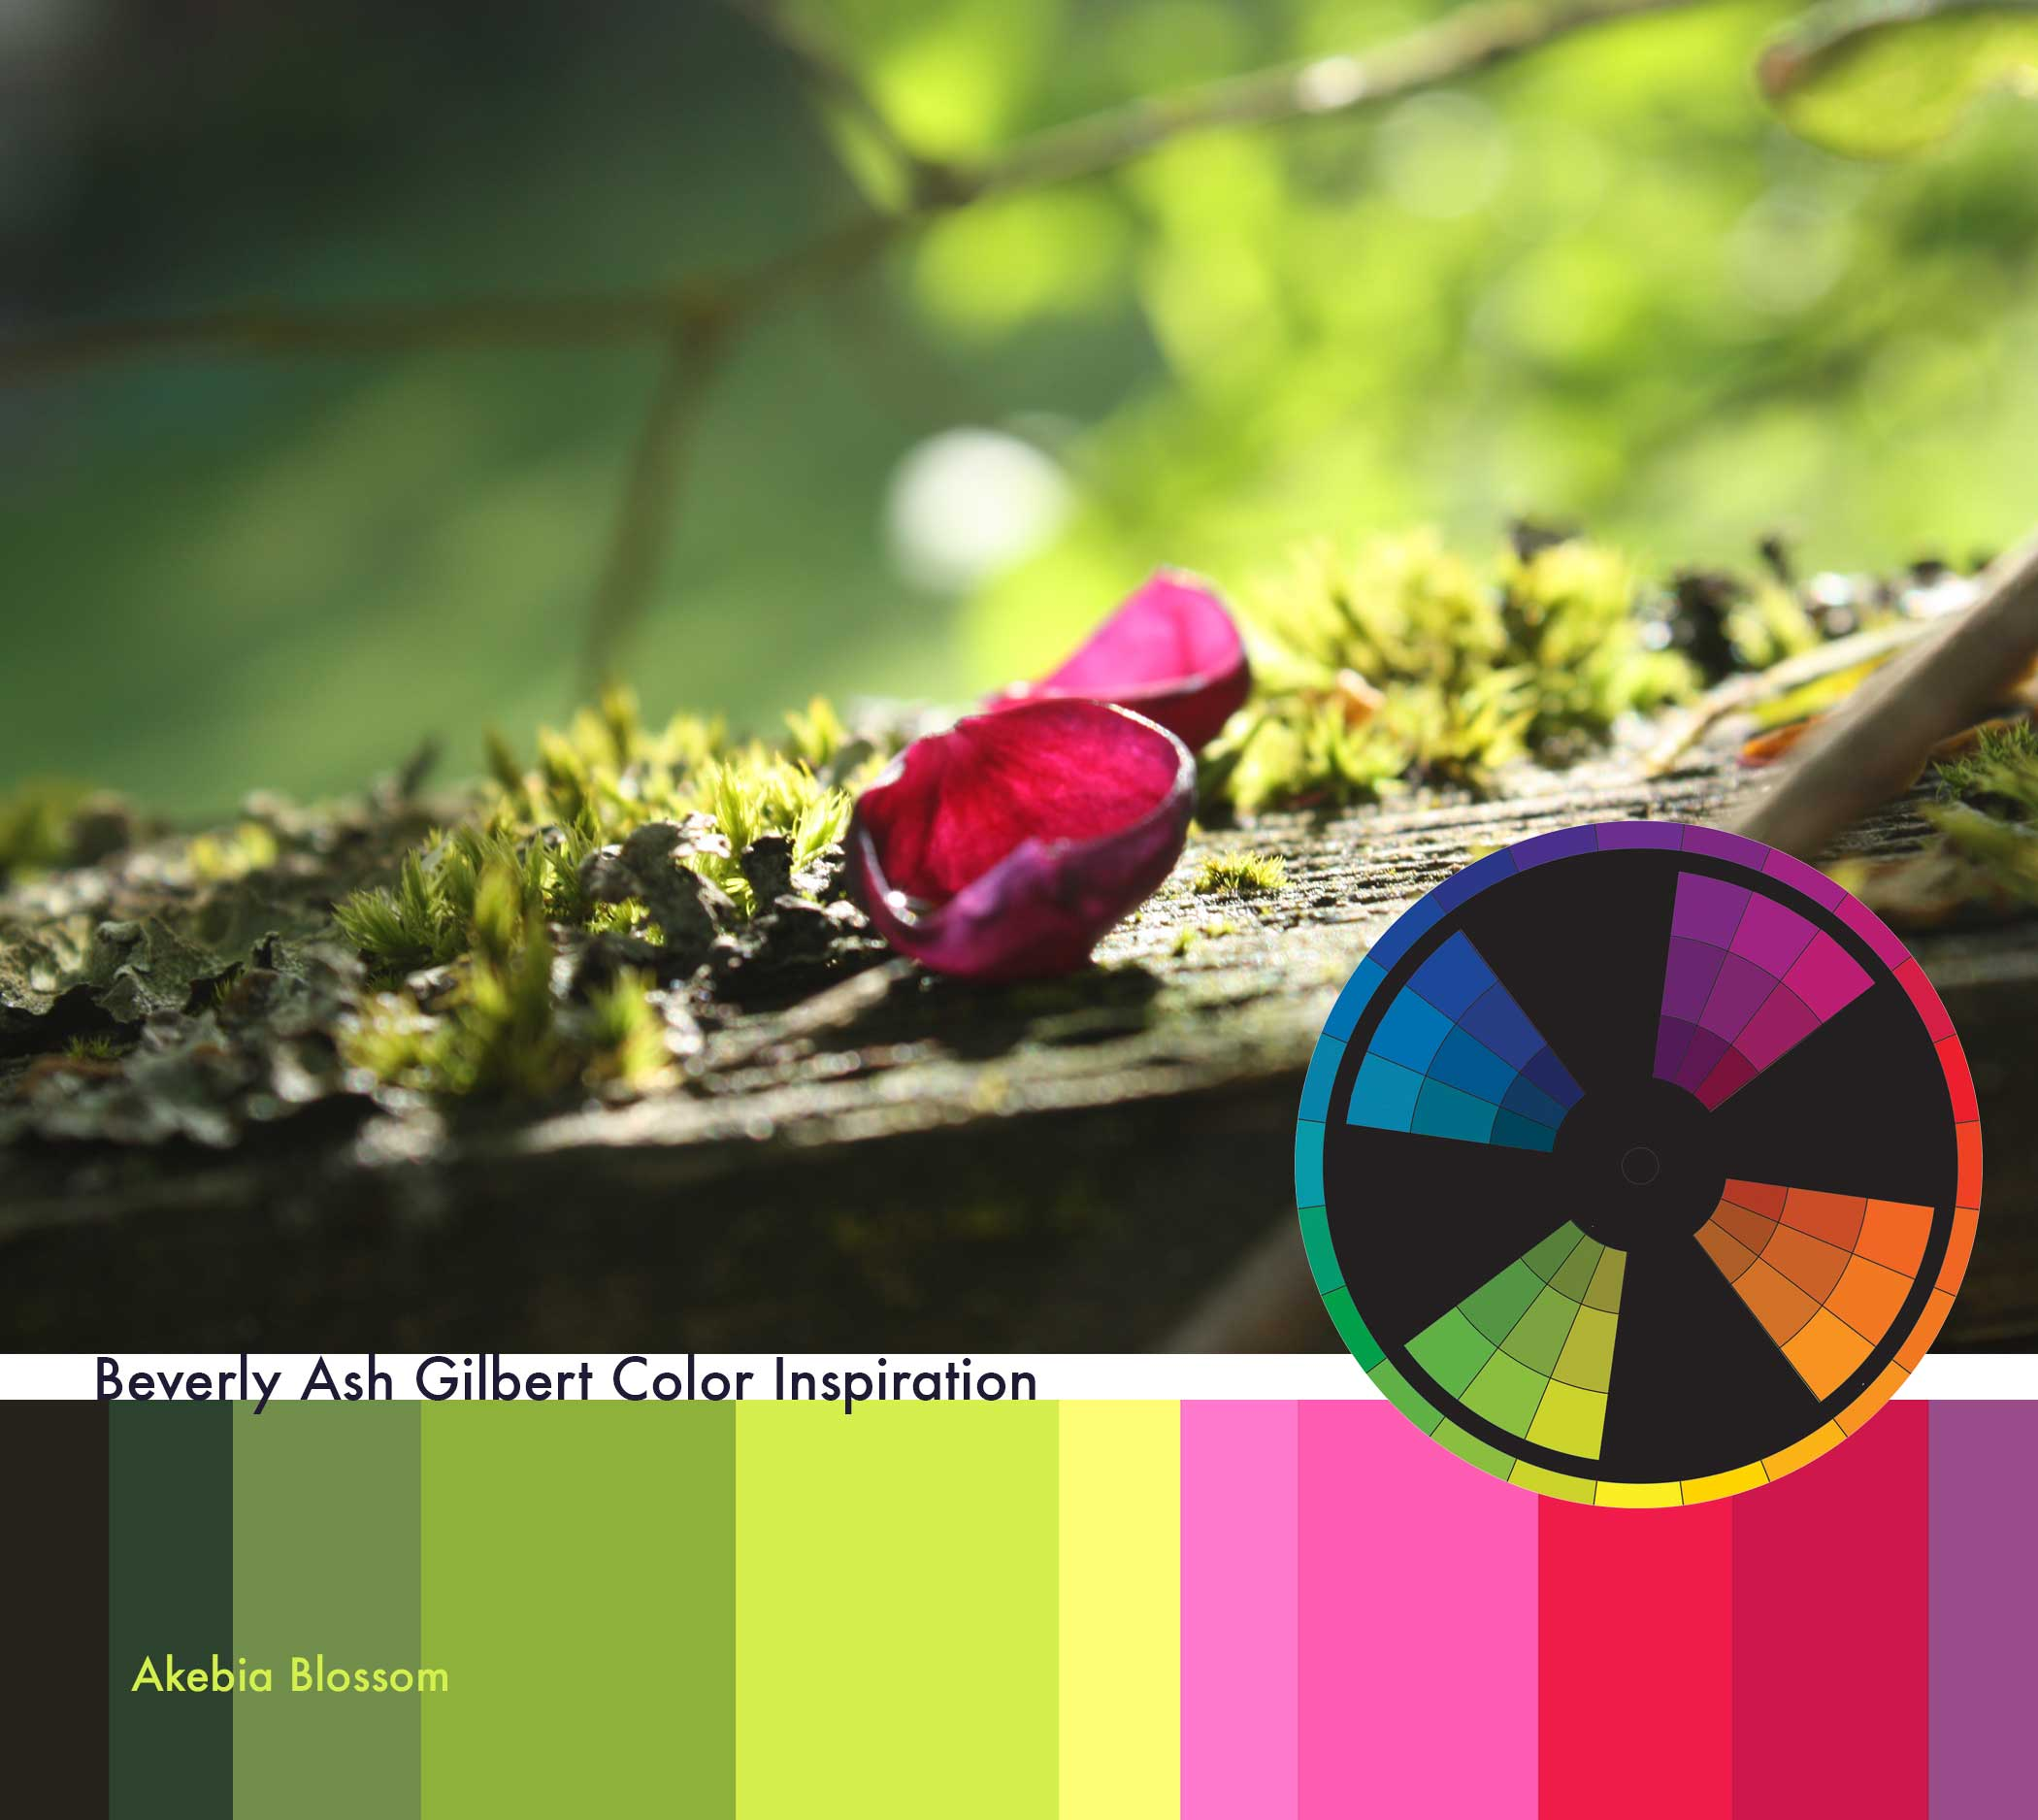 ColorInspiration_AkebiaBlossom_small.jpg